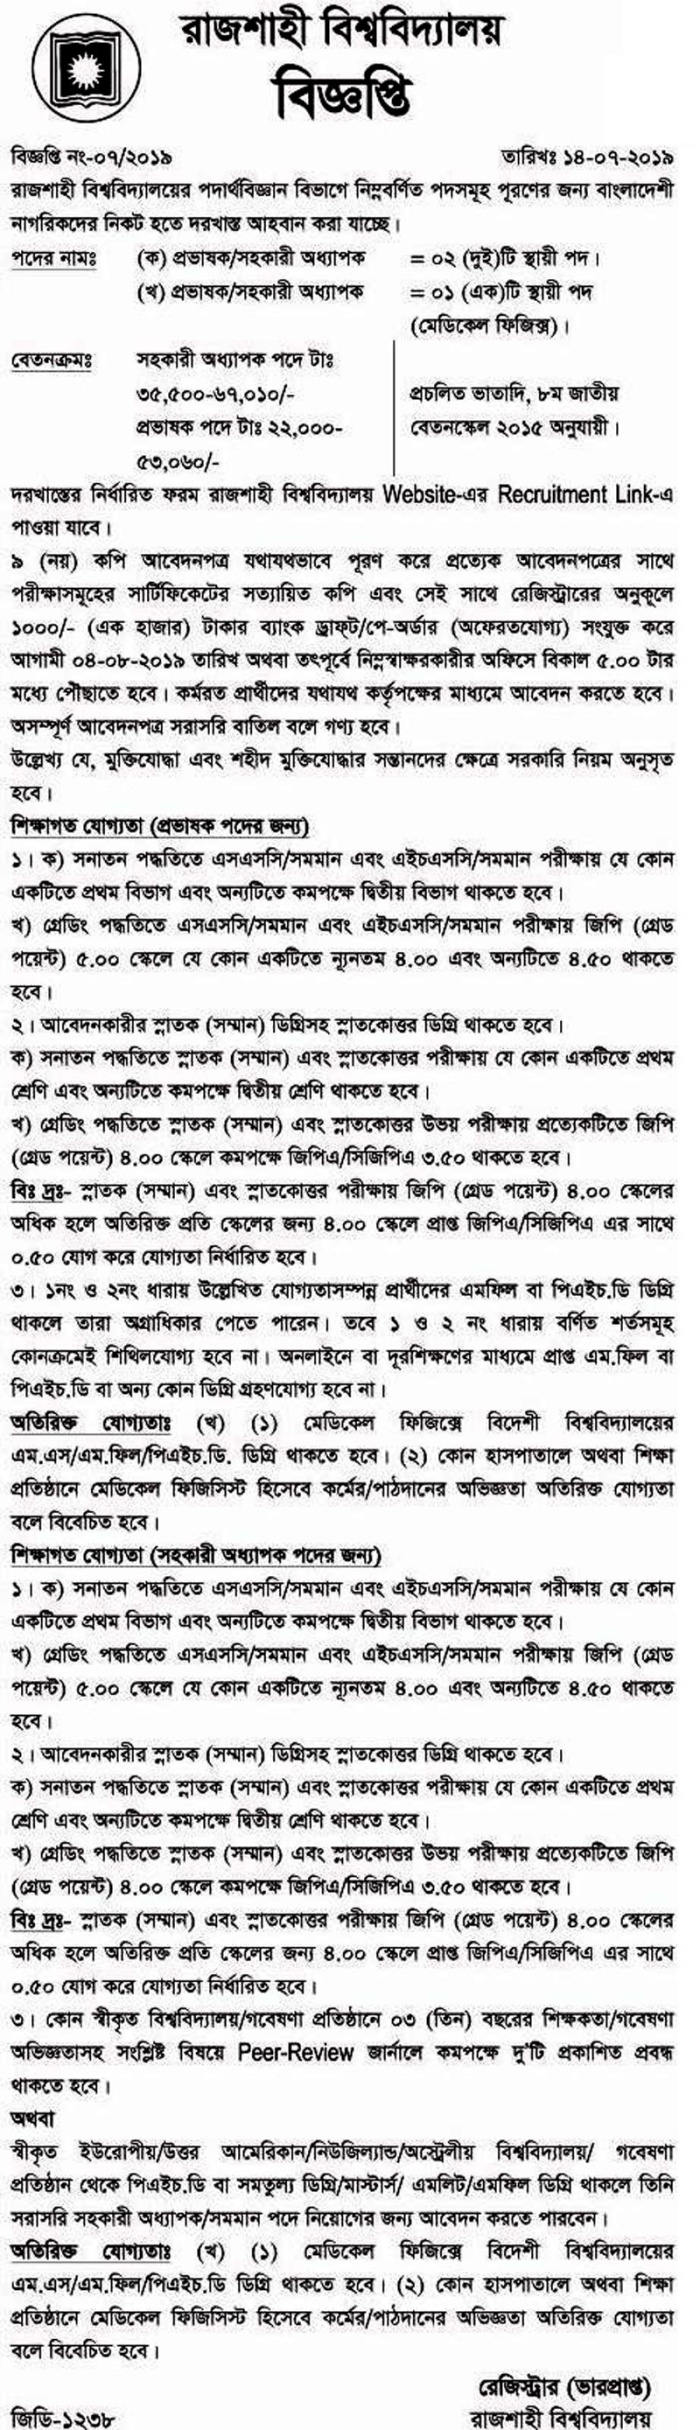 Rajshahi University Job 2019